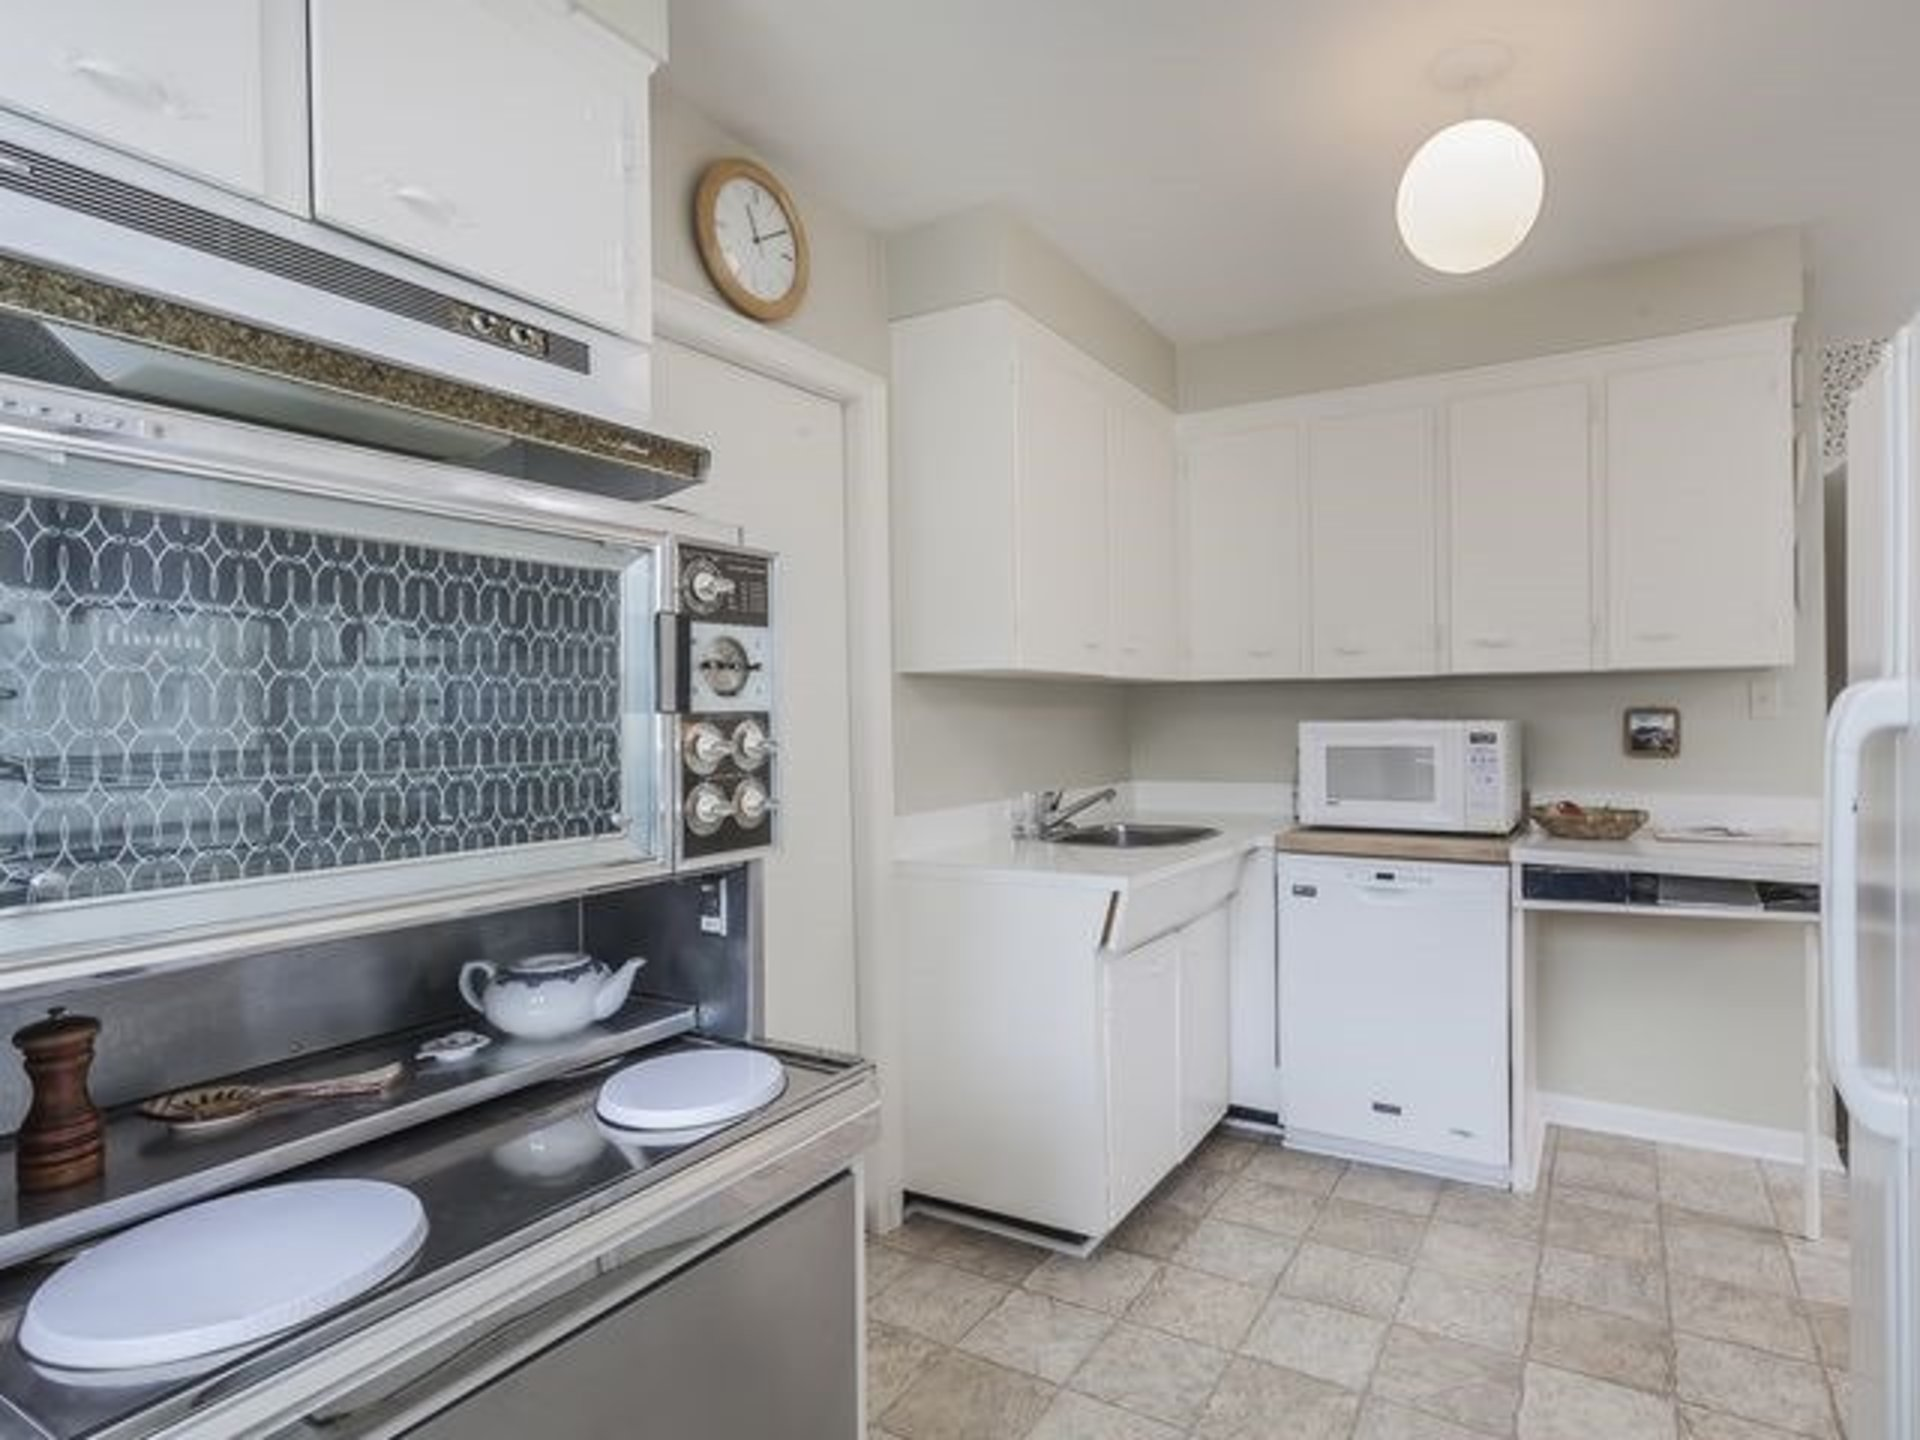 55 at SALE # 464 - 46 Palomino Crescent, Bayview Village, Toronto